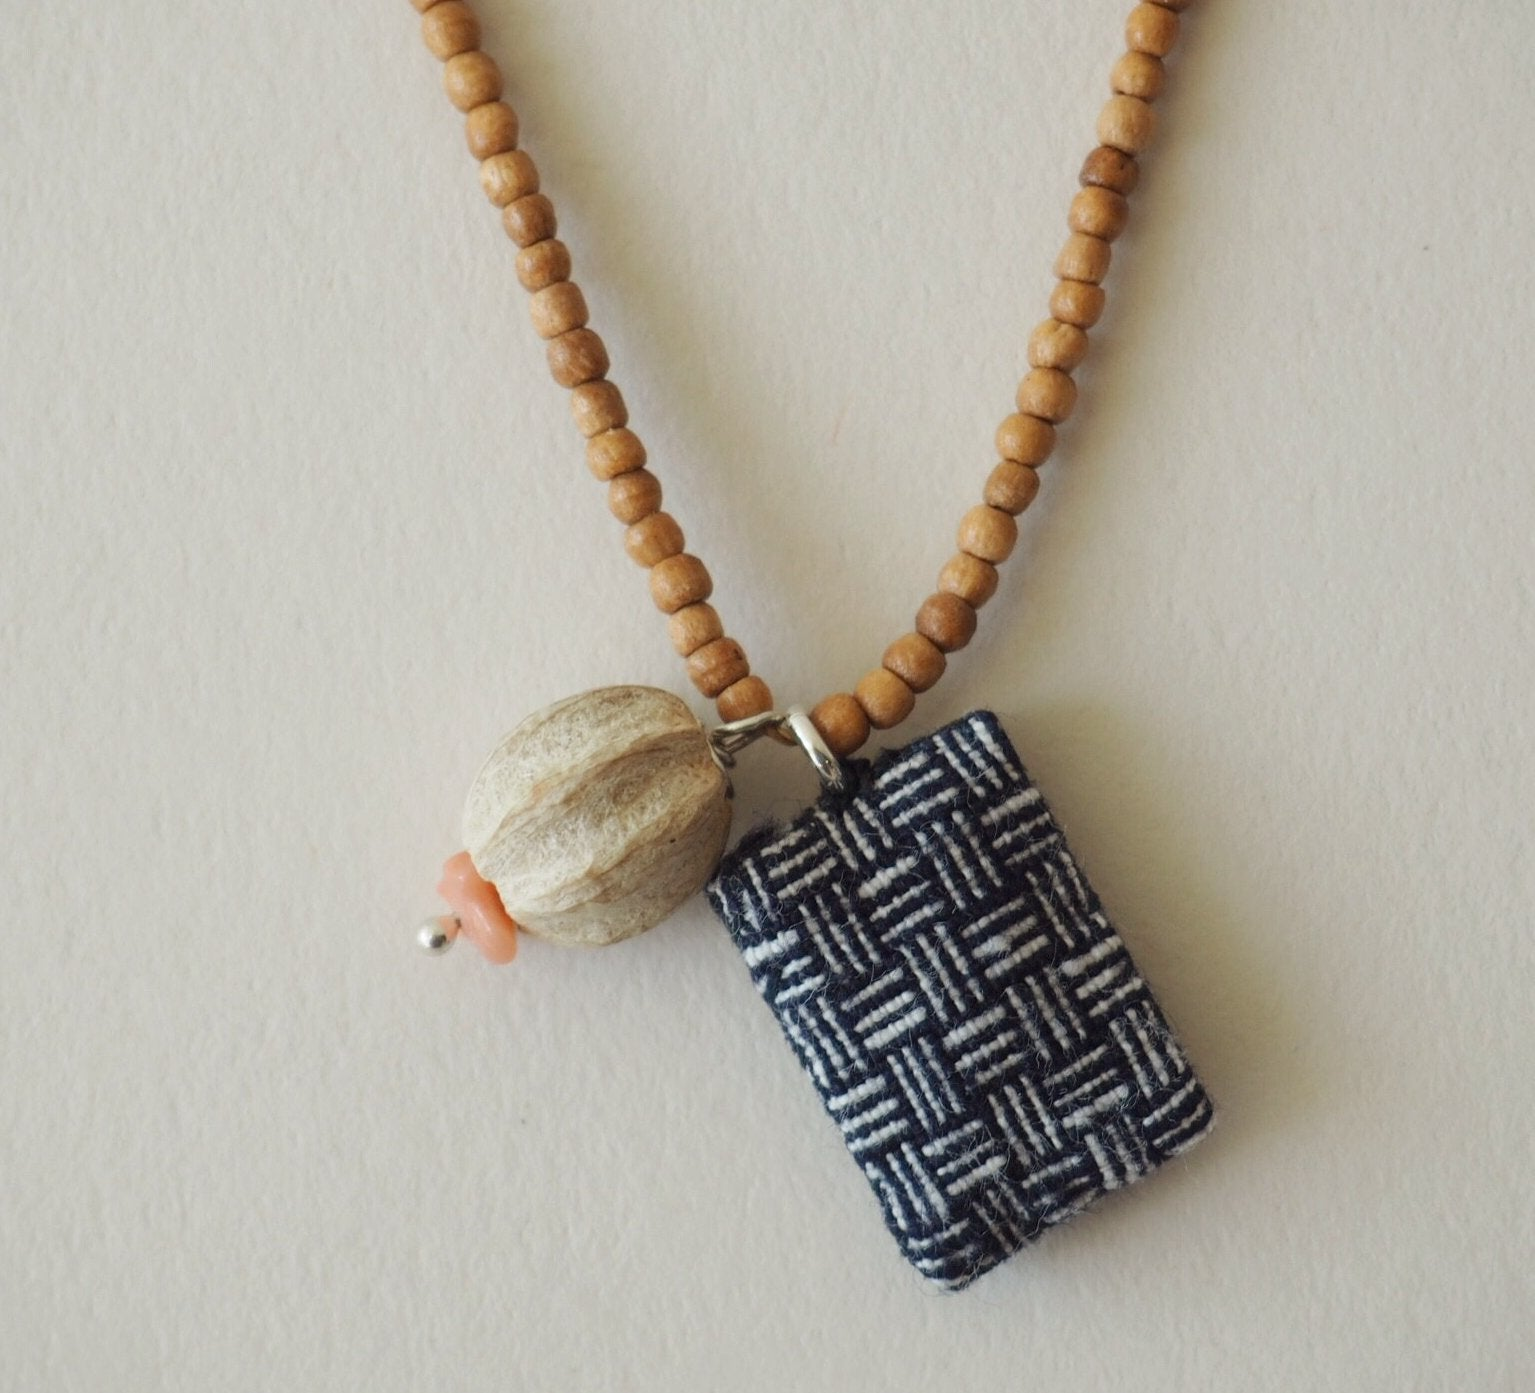 Indigo Trinket Necklace